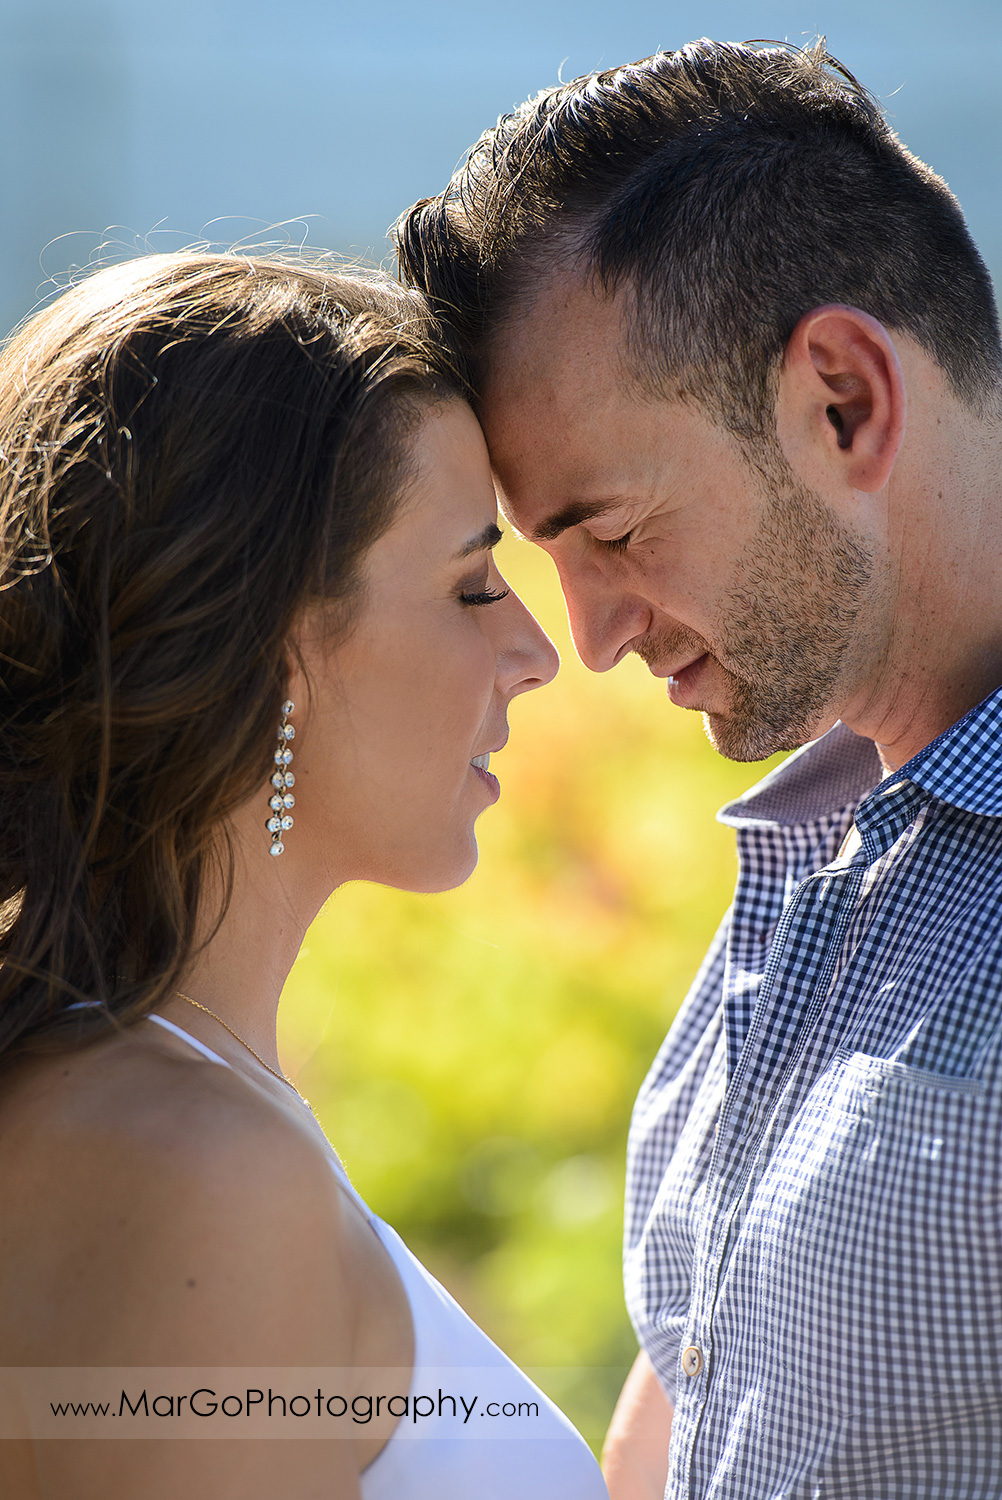 close-up portrait of woman in white top and man in blue shirttouching foreheads with eyes closed during Napa Valley engagement session at Grgich Hills Estate in Rutherford